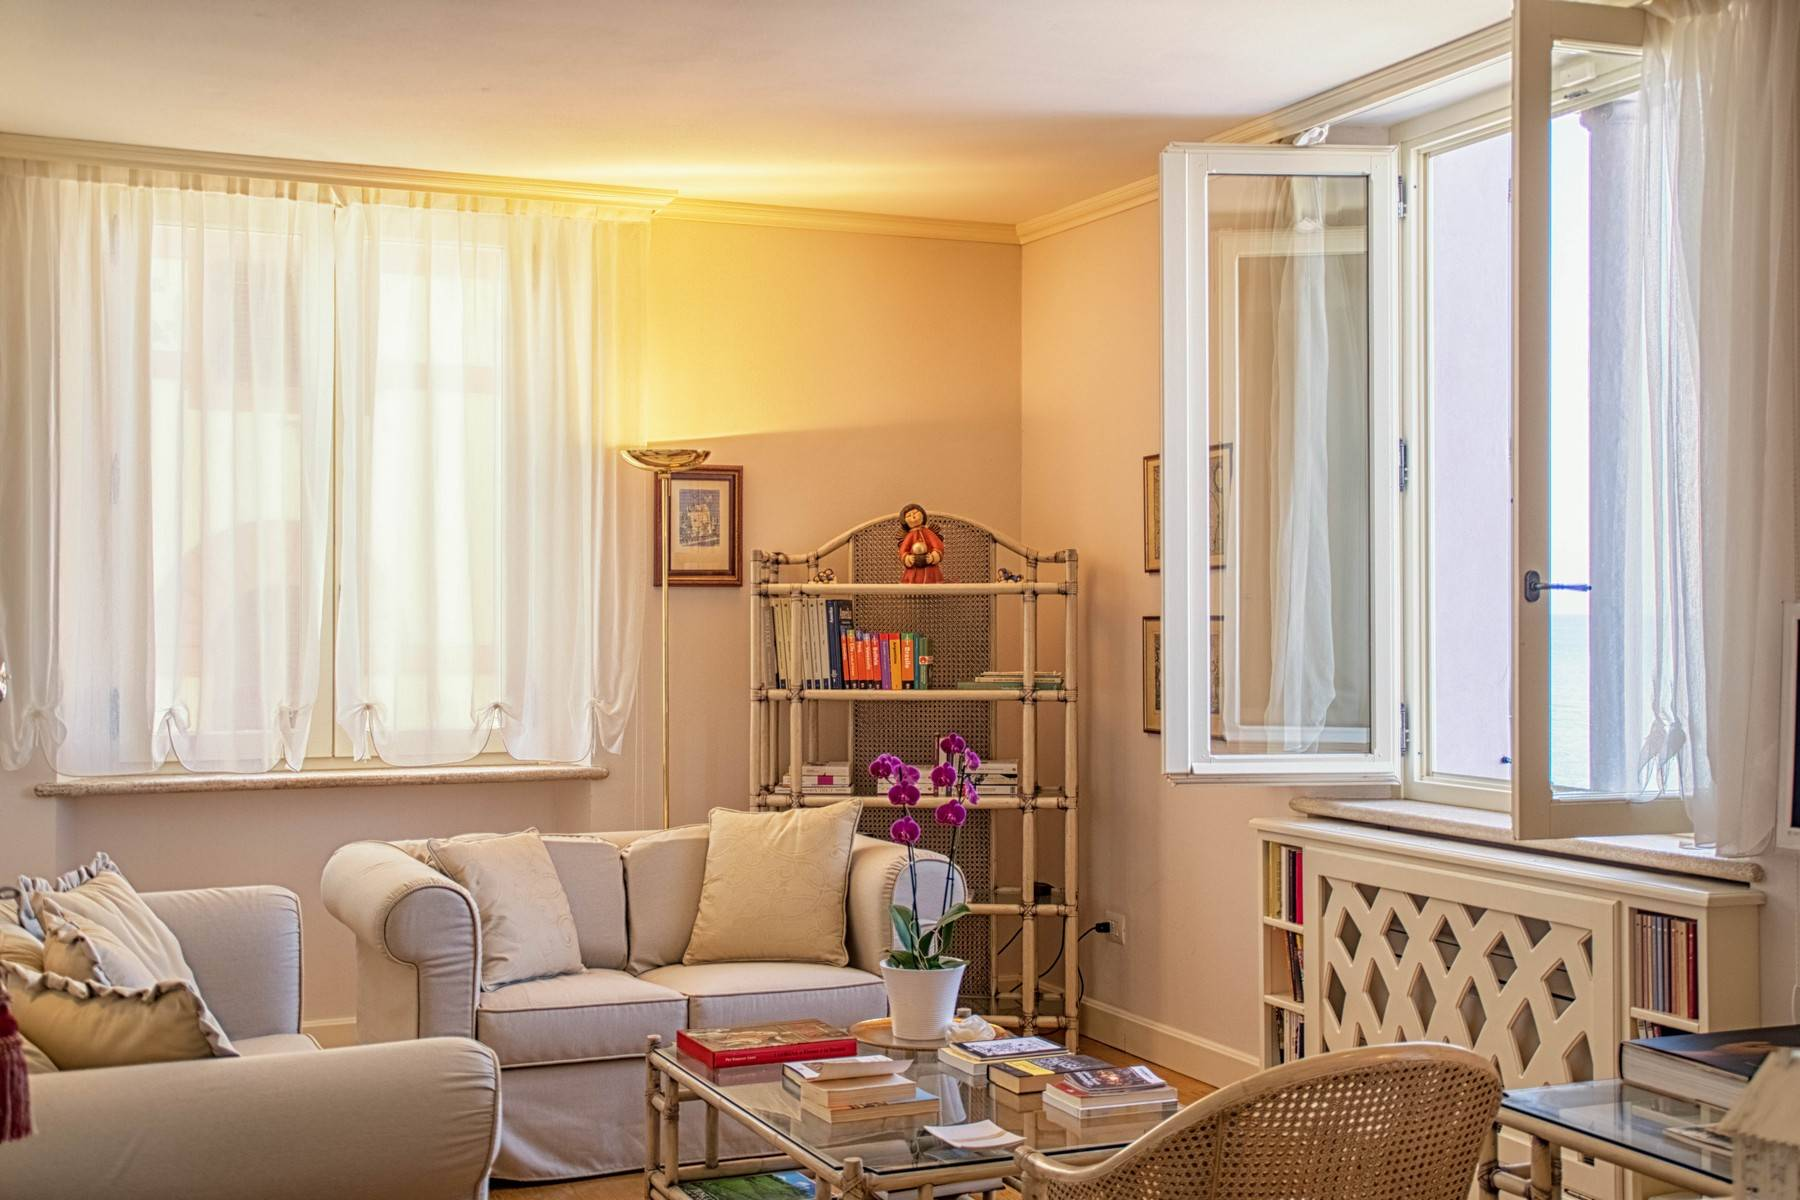 Beautiful apartment pied-dans-l'eau in Tuscany - 23